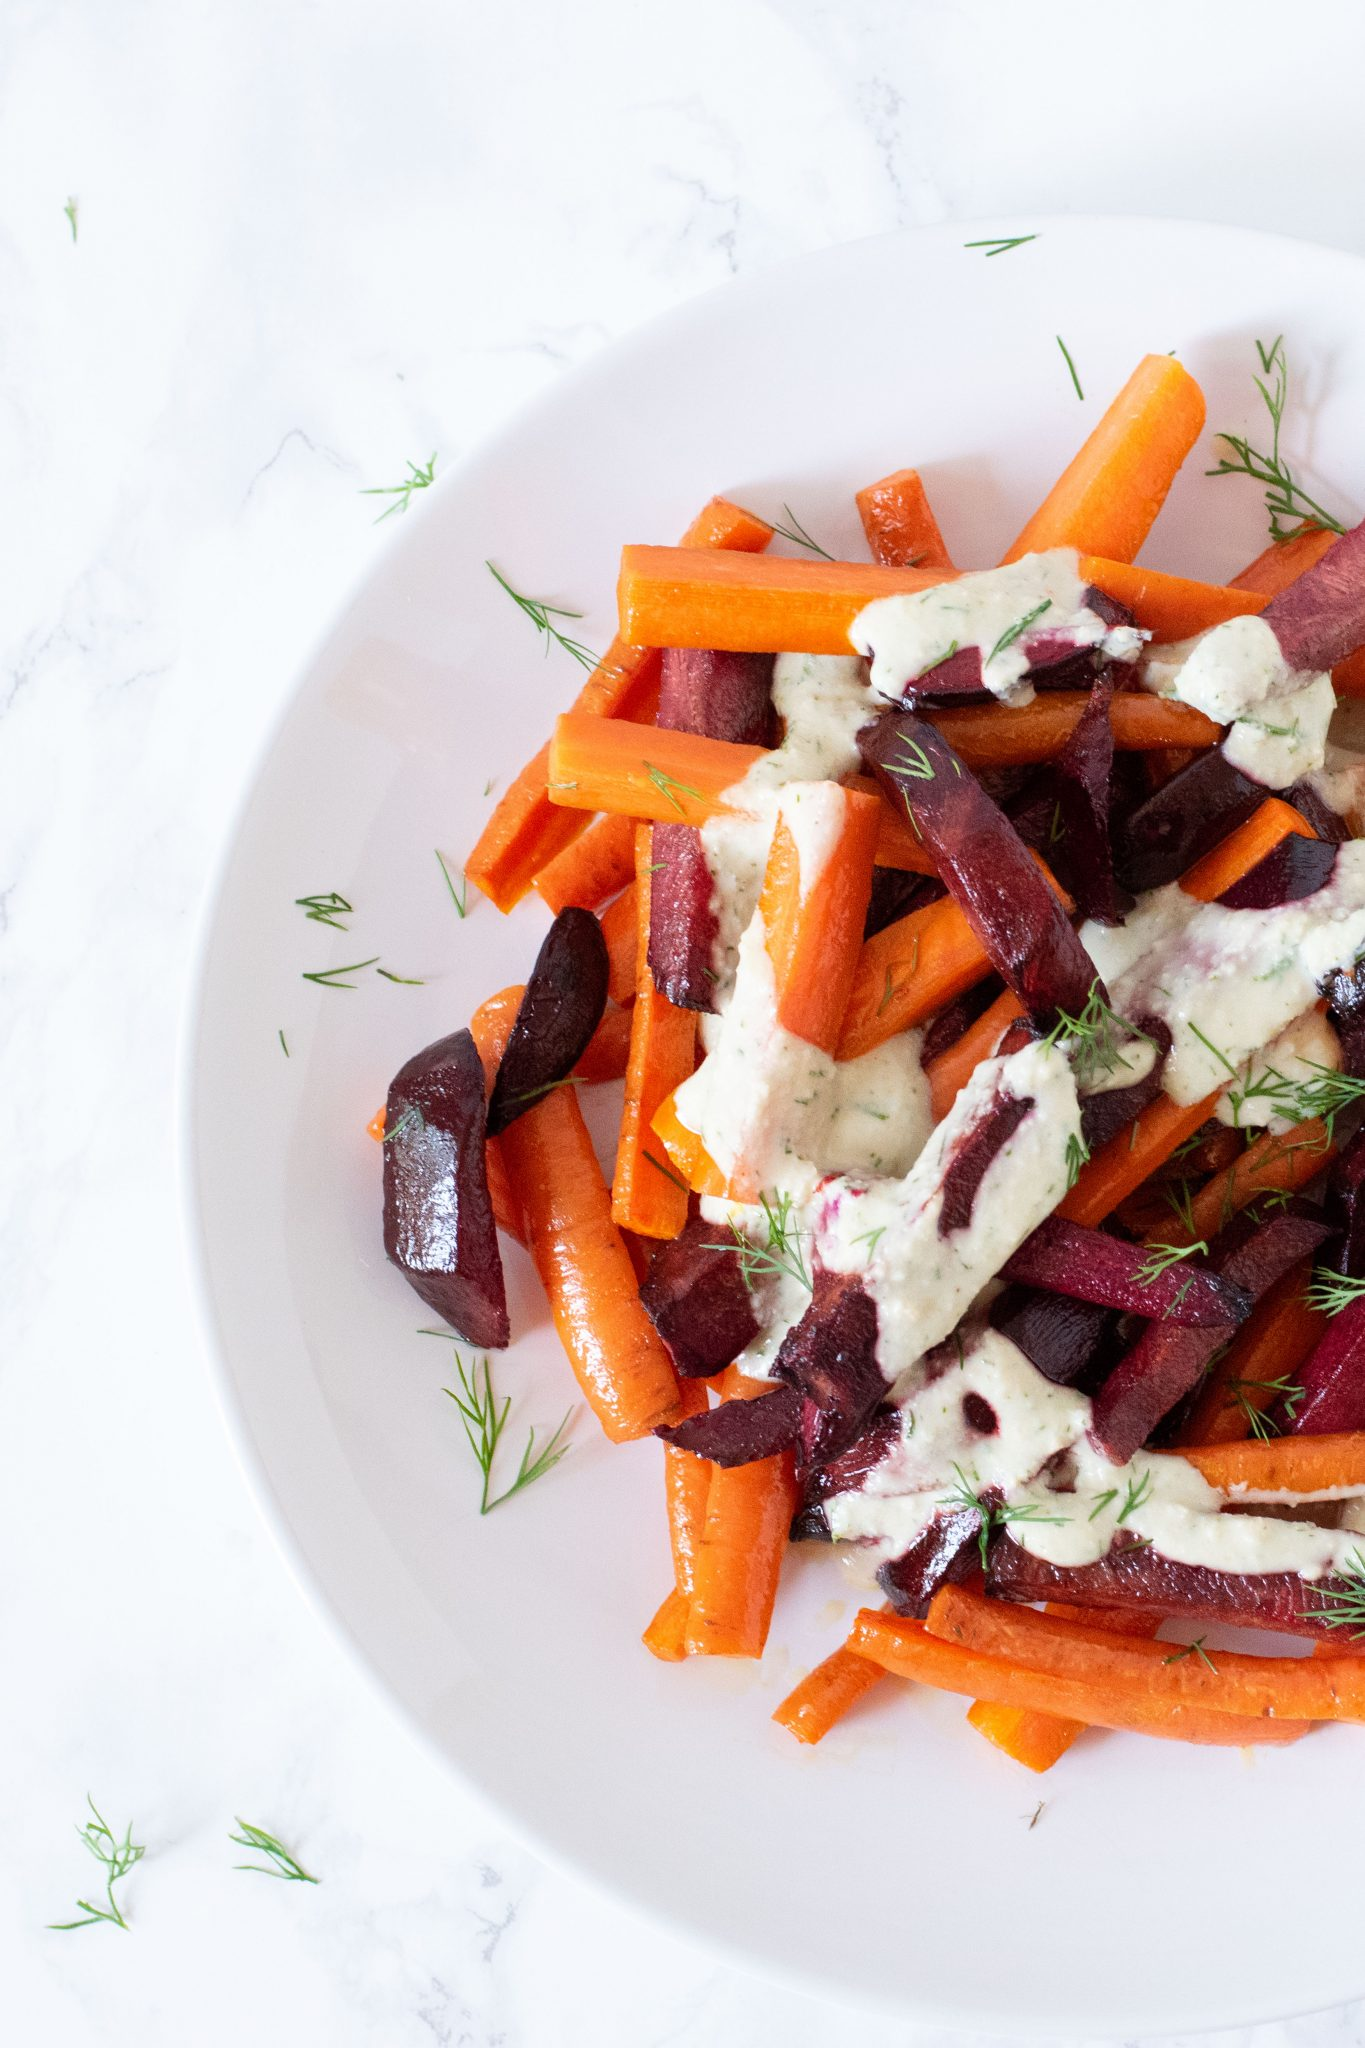 Roasted Beets and Carrots 4